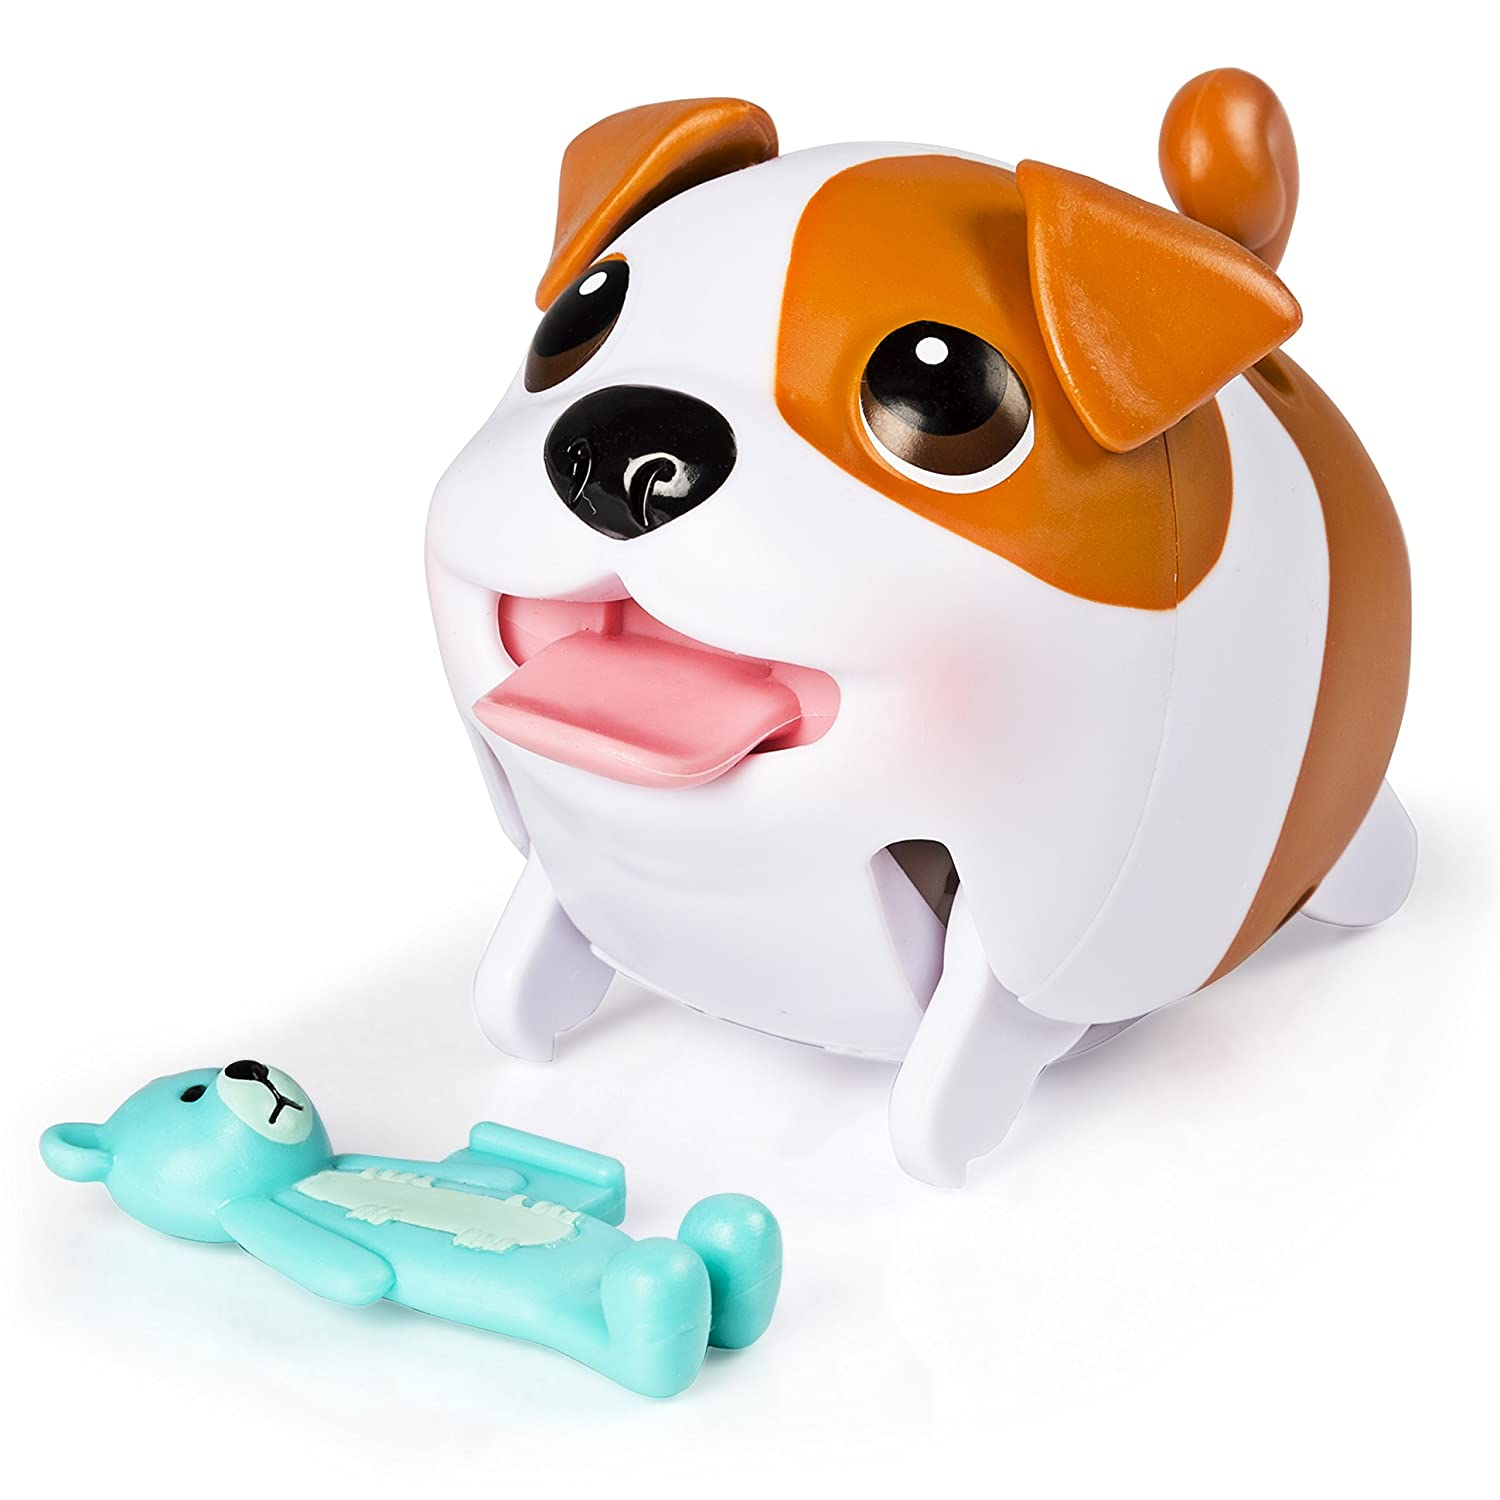 Amazon Chubby Puppies Single Pack Bulldog Toys & Games